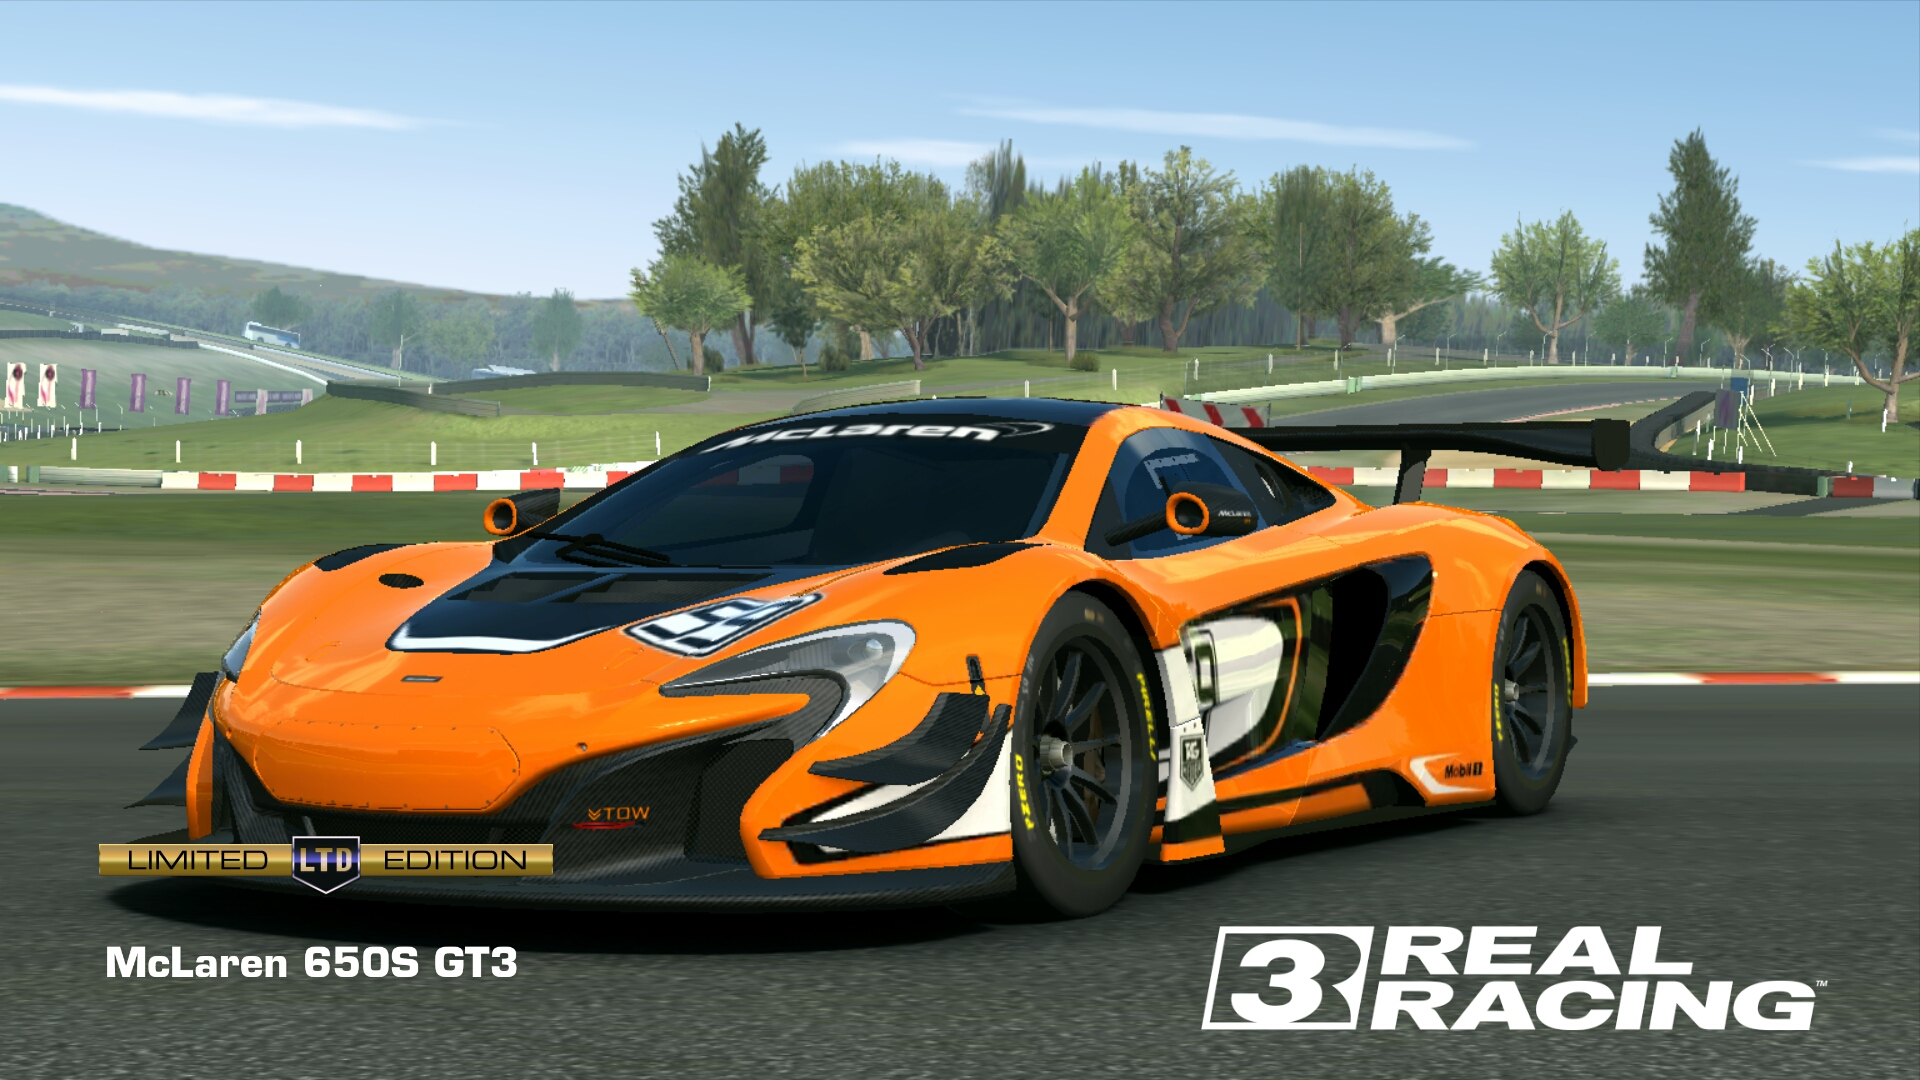 https://vignette.wikia.nocookie.net/rr3/images/3/3b/Showcase_McLaren_650S_GT3.jpg/revision/latest?cb=20161202222232